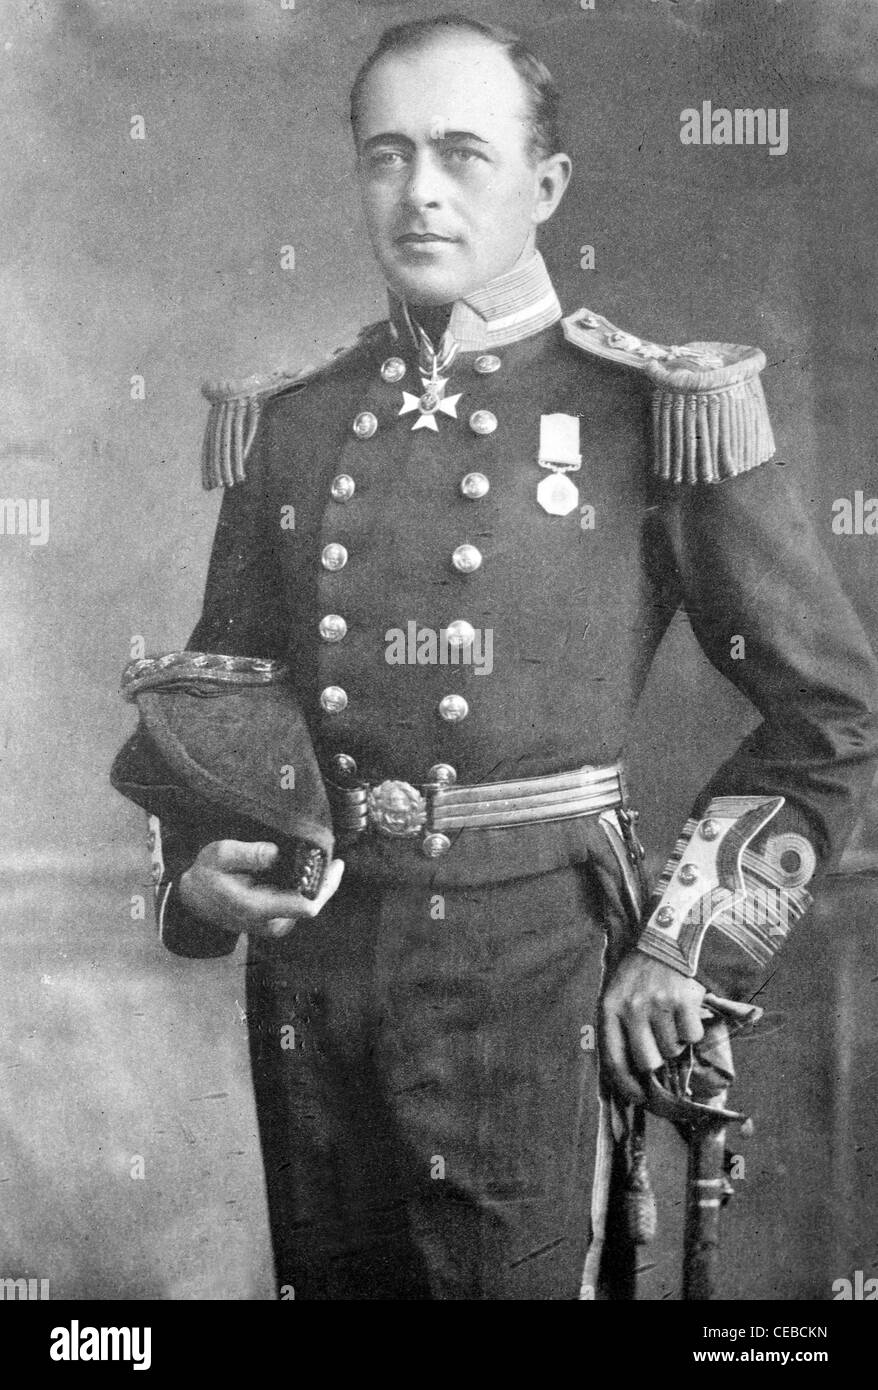 Robert Falcon Scott, Royal Navy officer and explorer - Stock Image